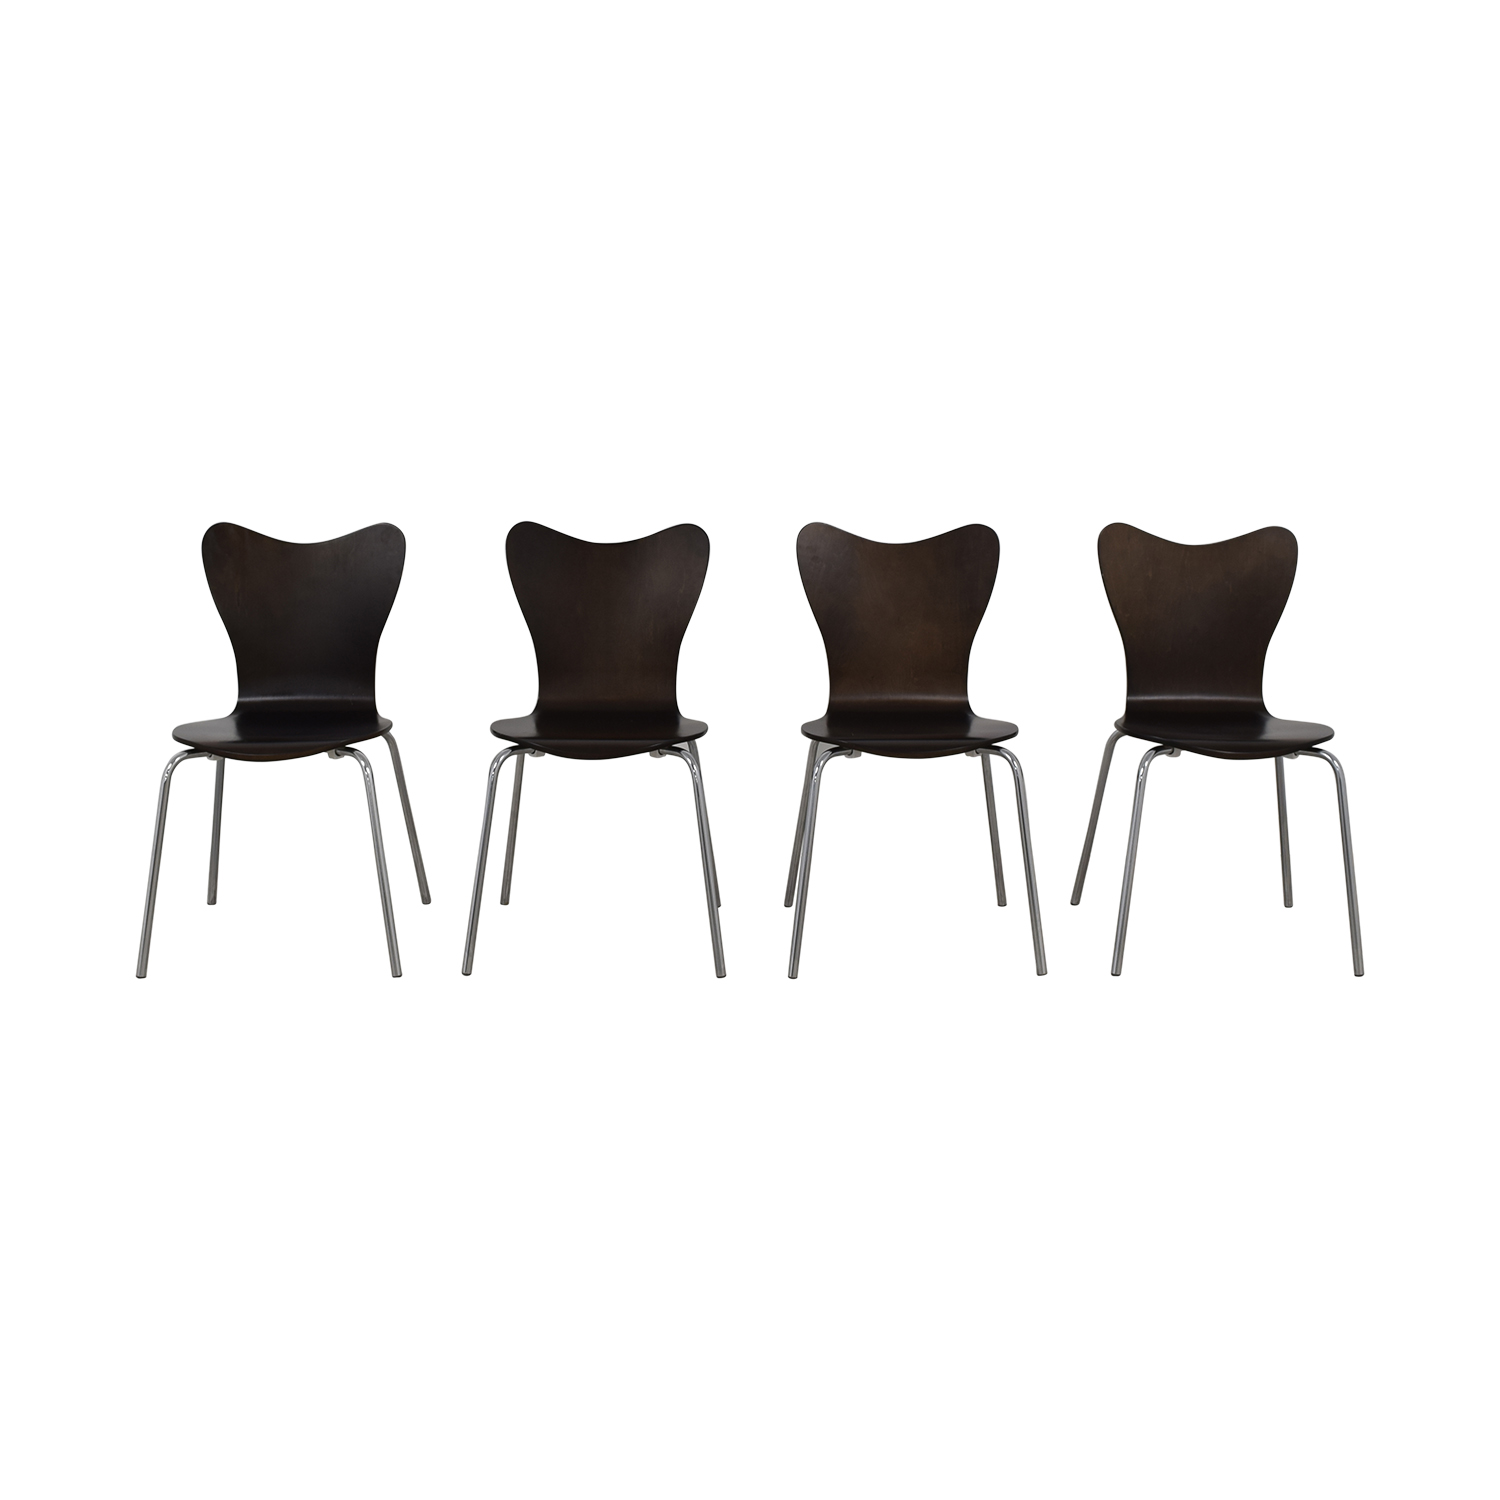 West Elm West Elm Scoop Back Dining Chairs brown